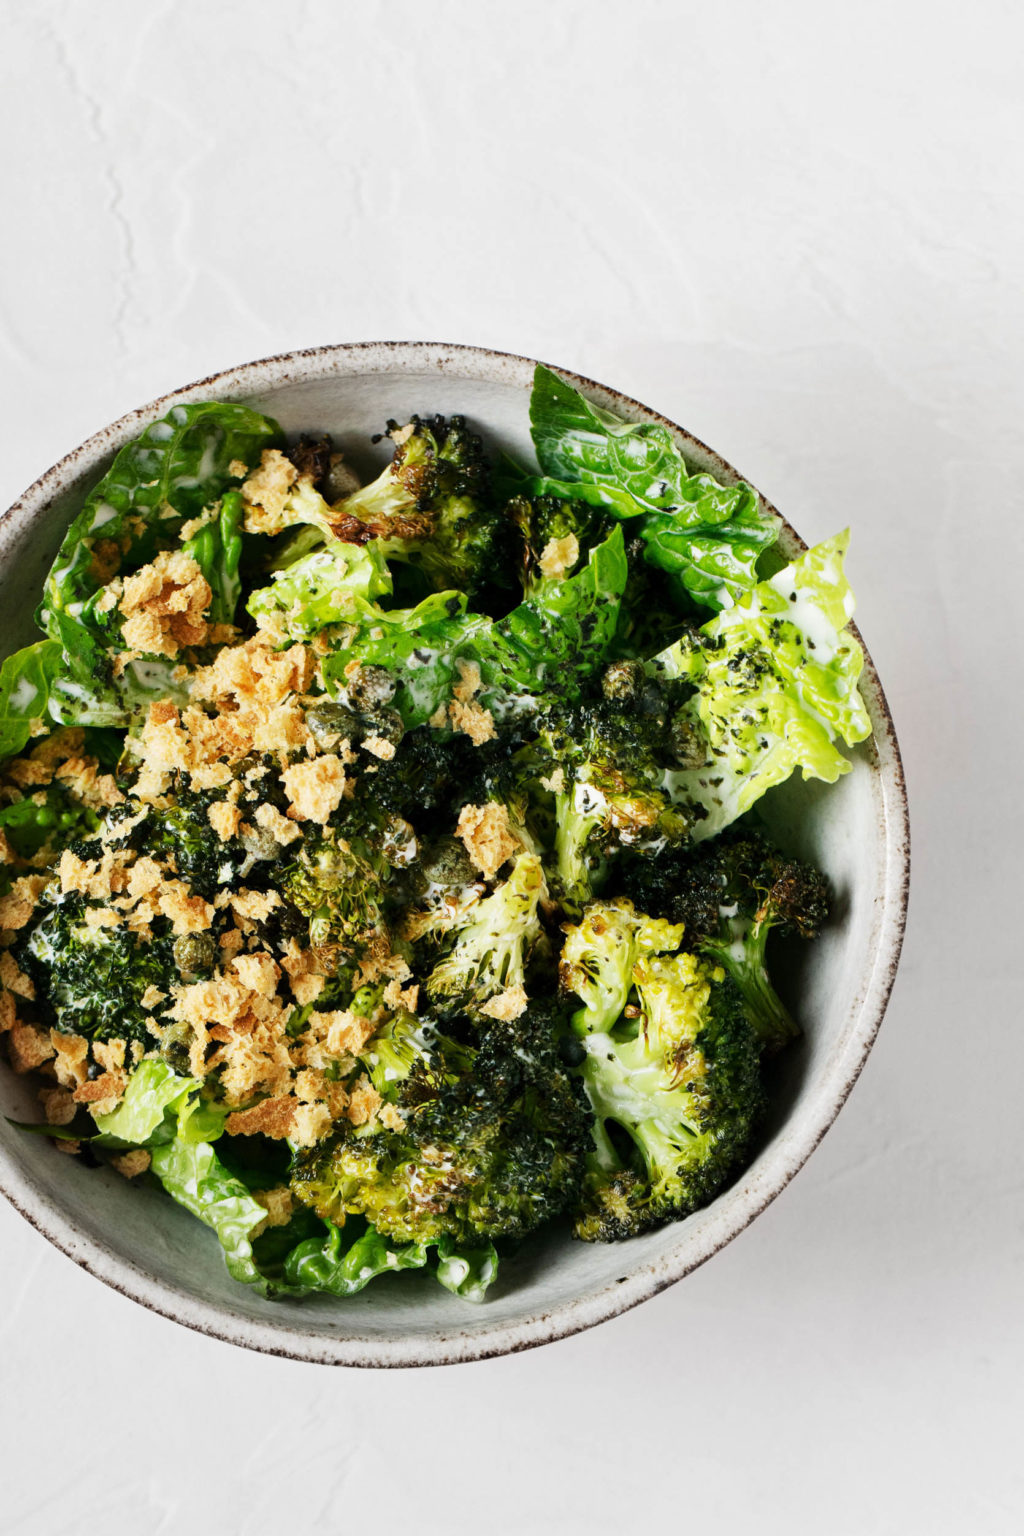 An overhead shot of a bright green dish of crispy roasted broccoli Caesar salad.